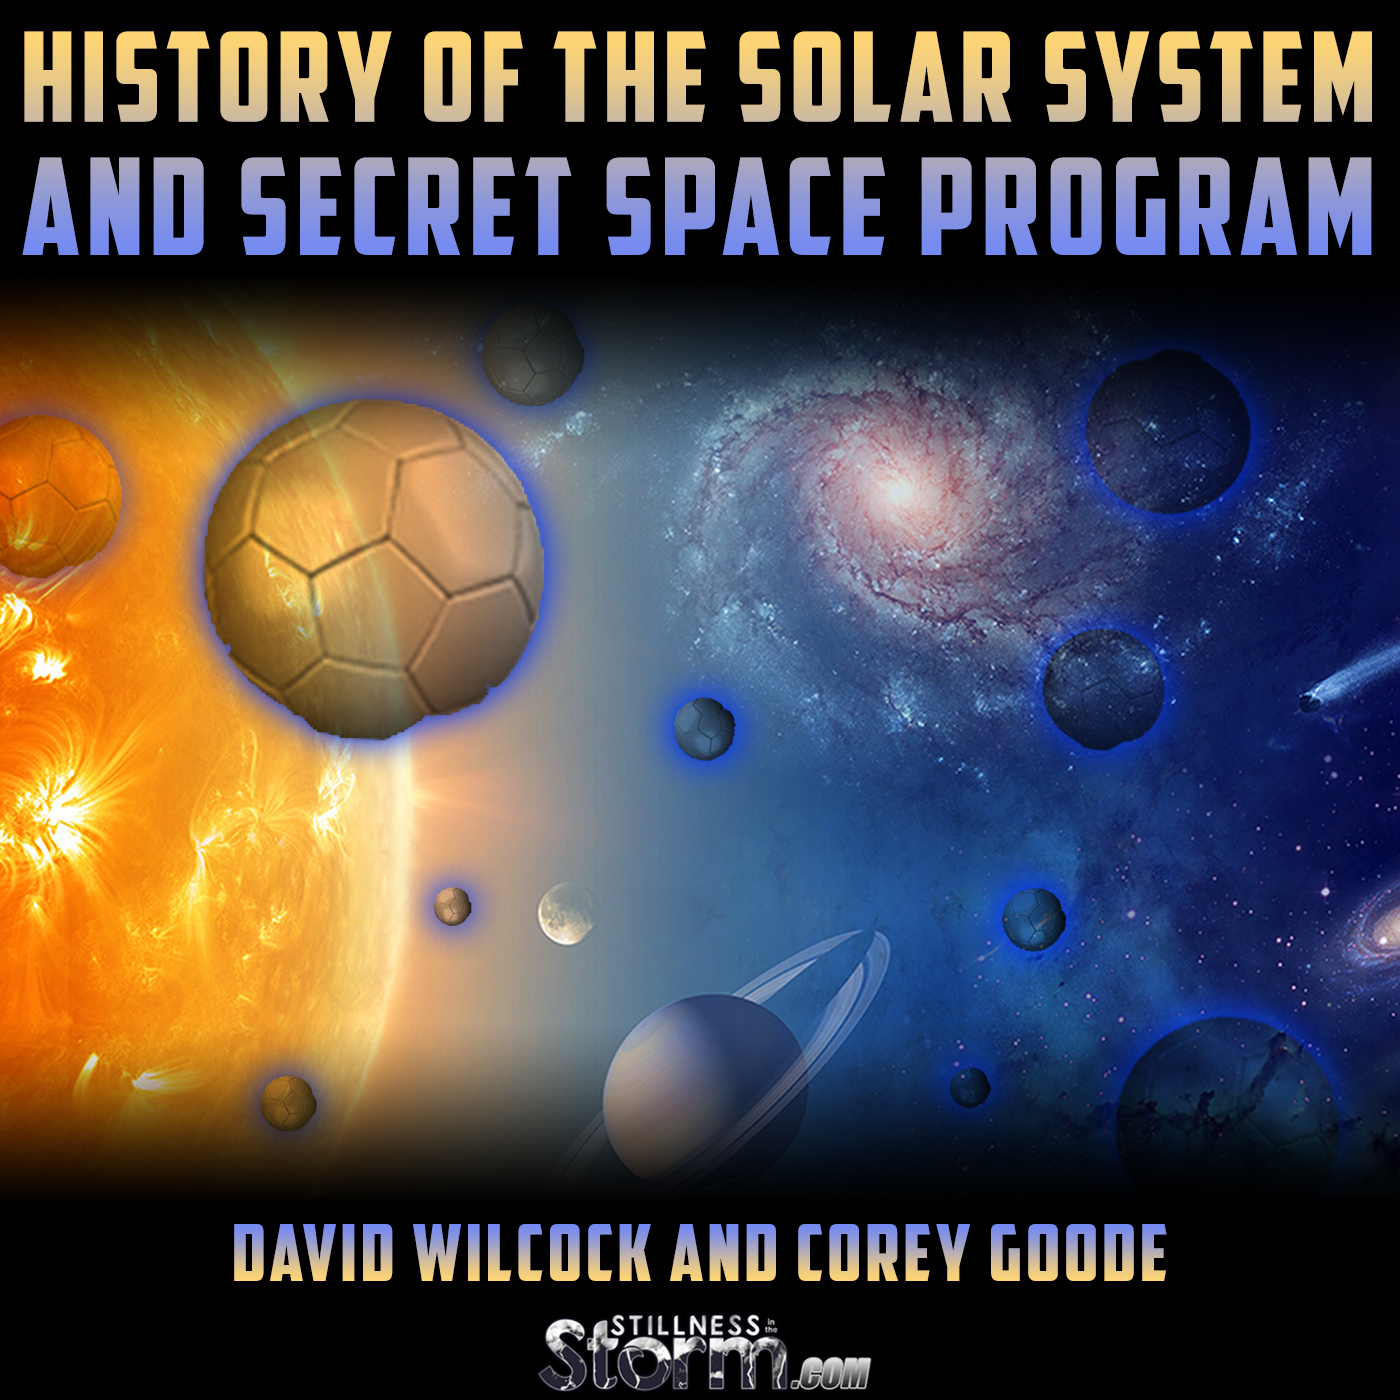 David Wilcock and Corey Goode: History of the Solar System